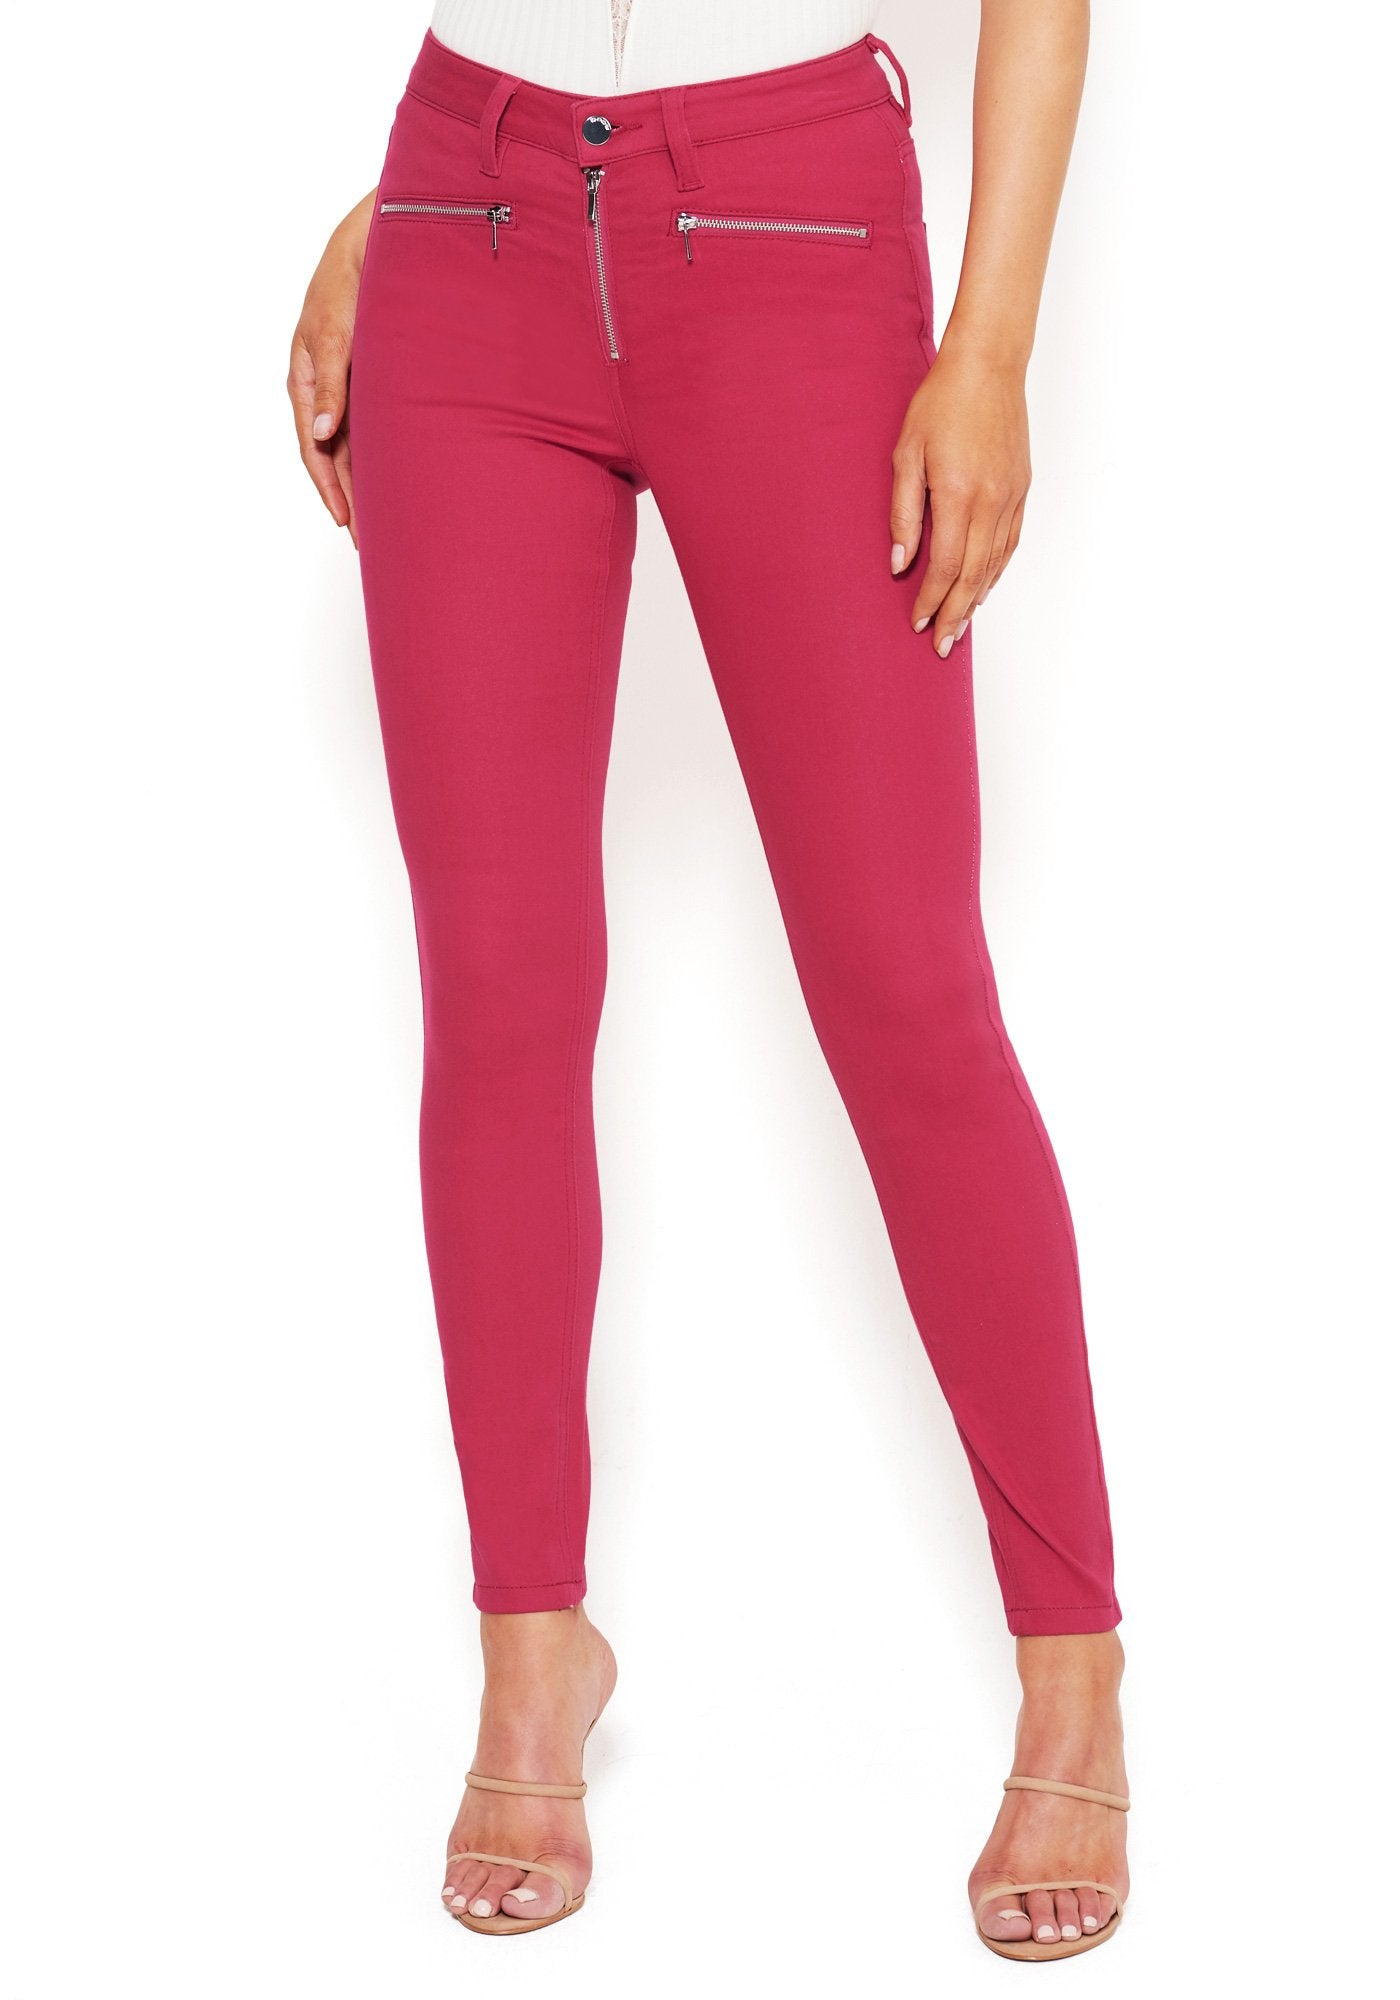 Bebe Women's Moto Slim Fit Skinny Jeans, Size 25 in CABARET Cotton/Spandex